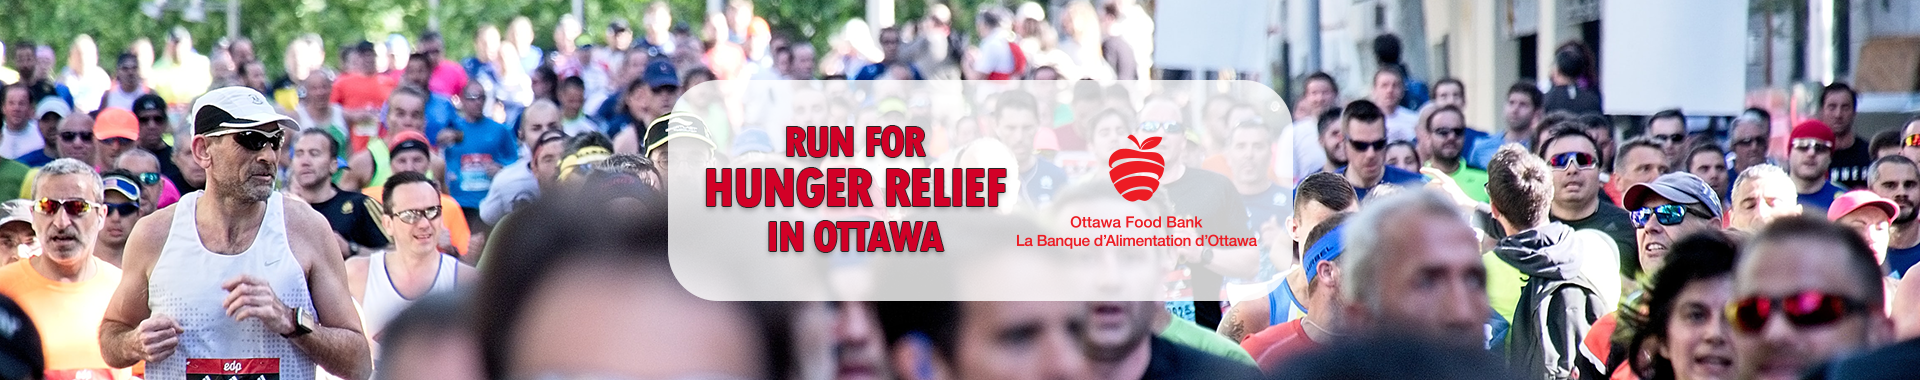 Ottawa Race Weekend Ottawa Food bank hunger relief